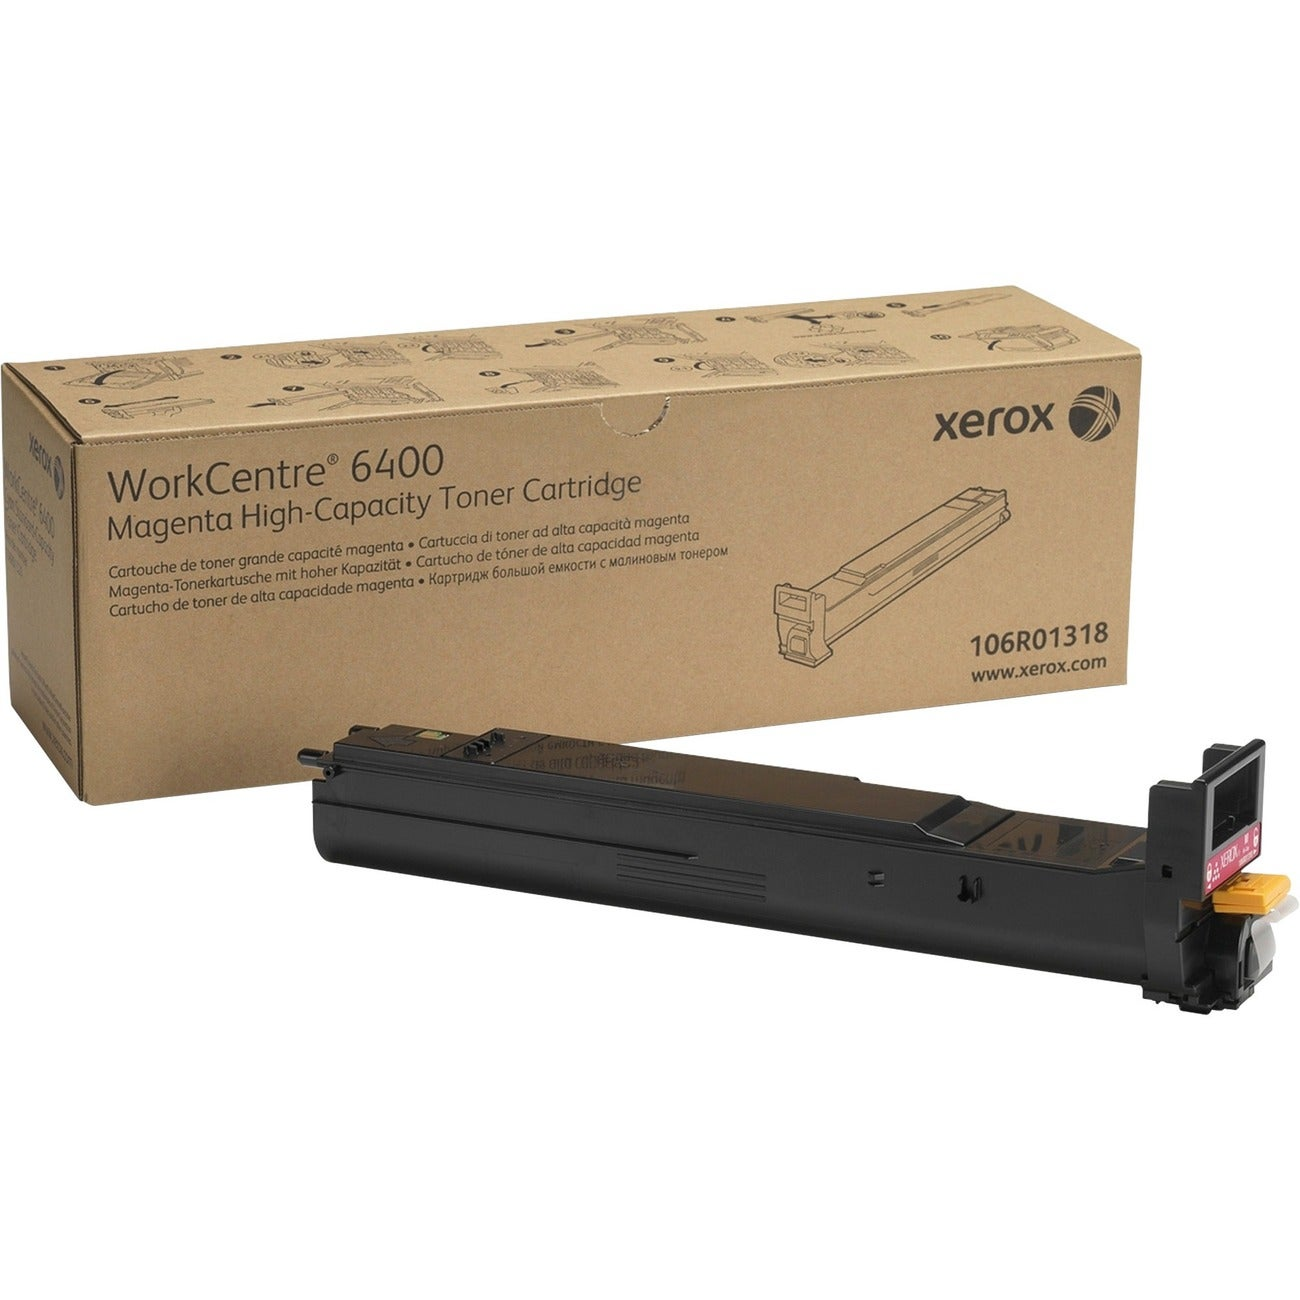 Xerox High Capacity Magenta Toner Cartridge - Thumbnail 0